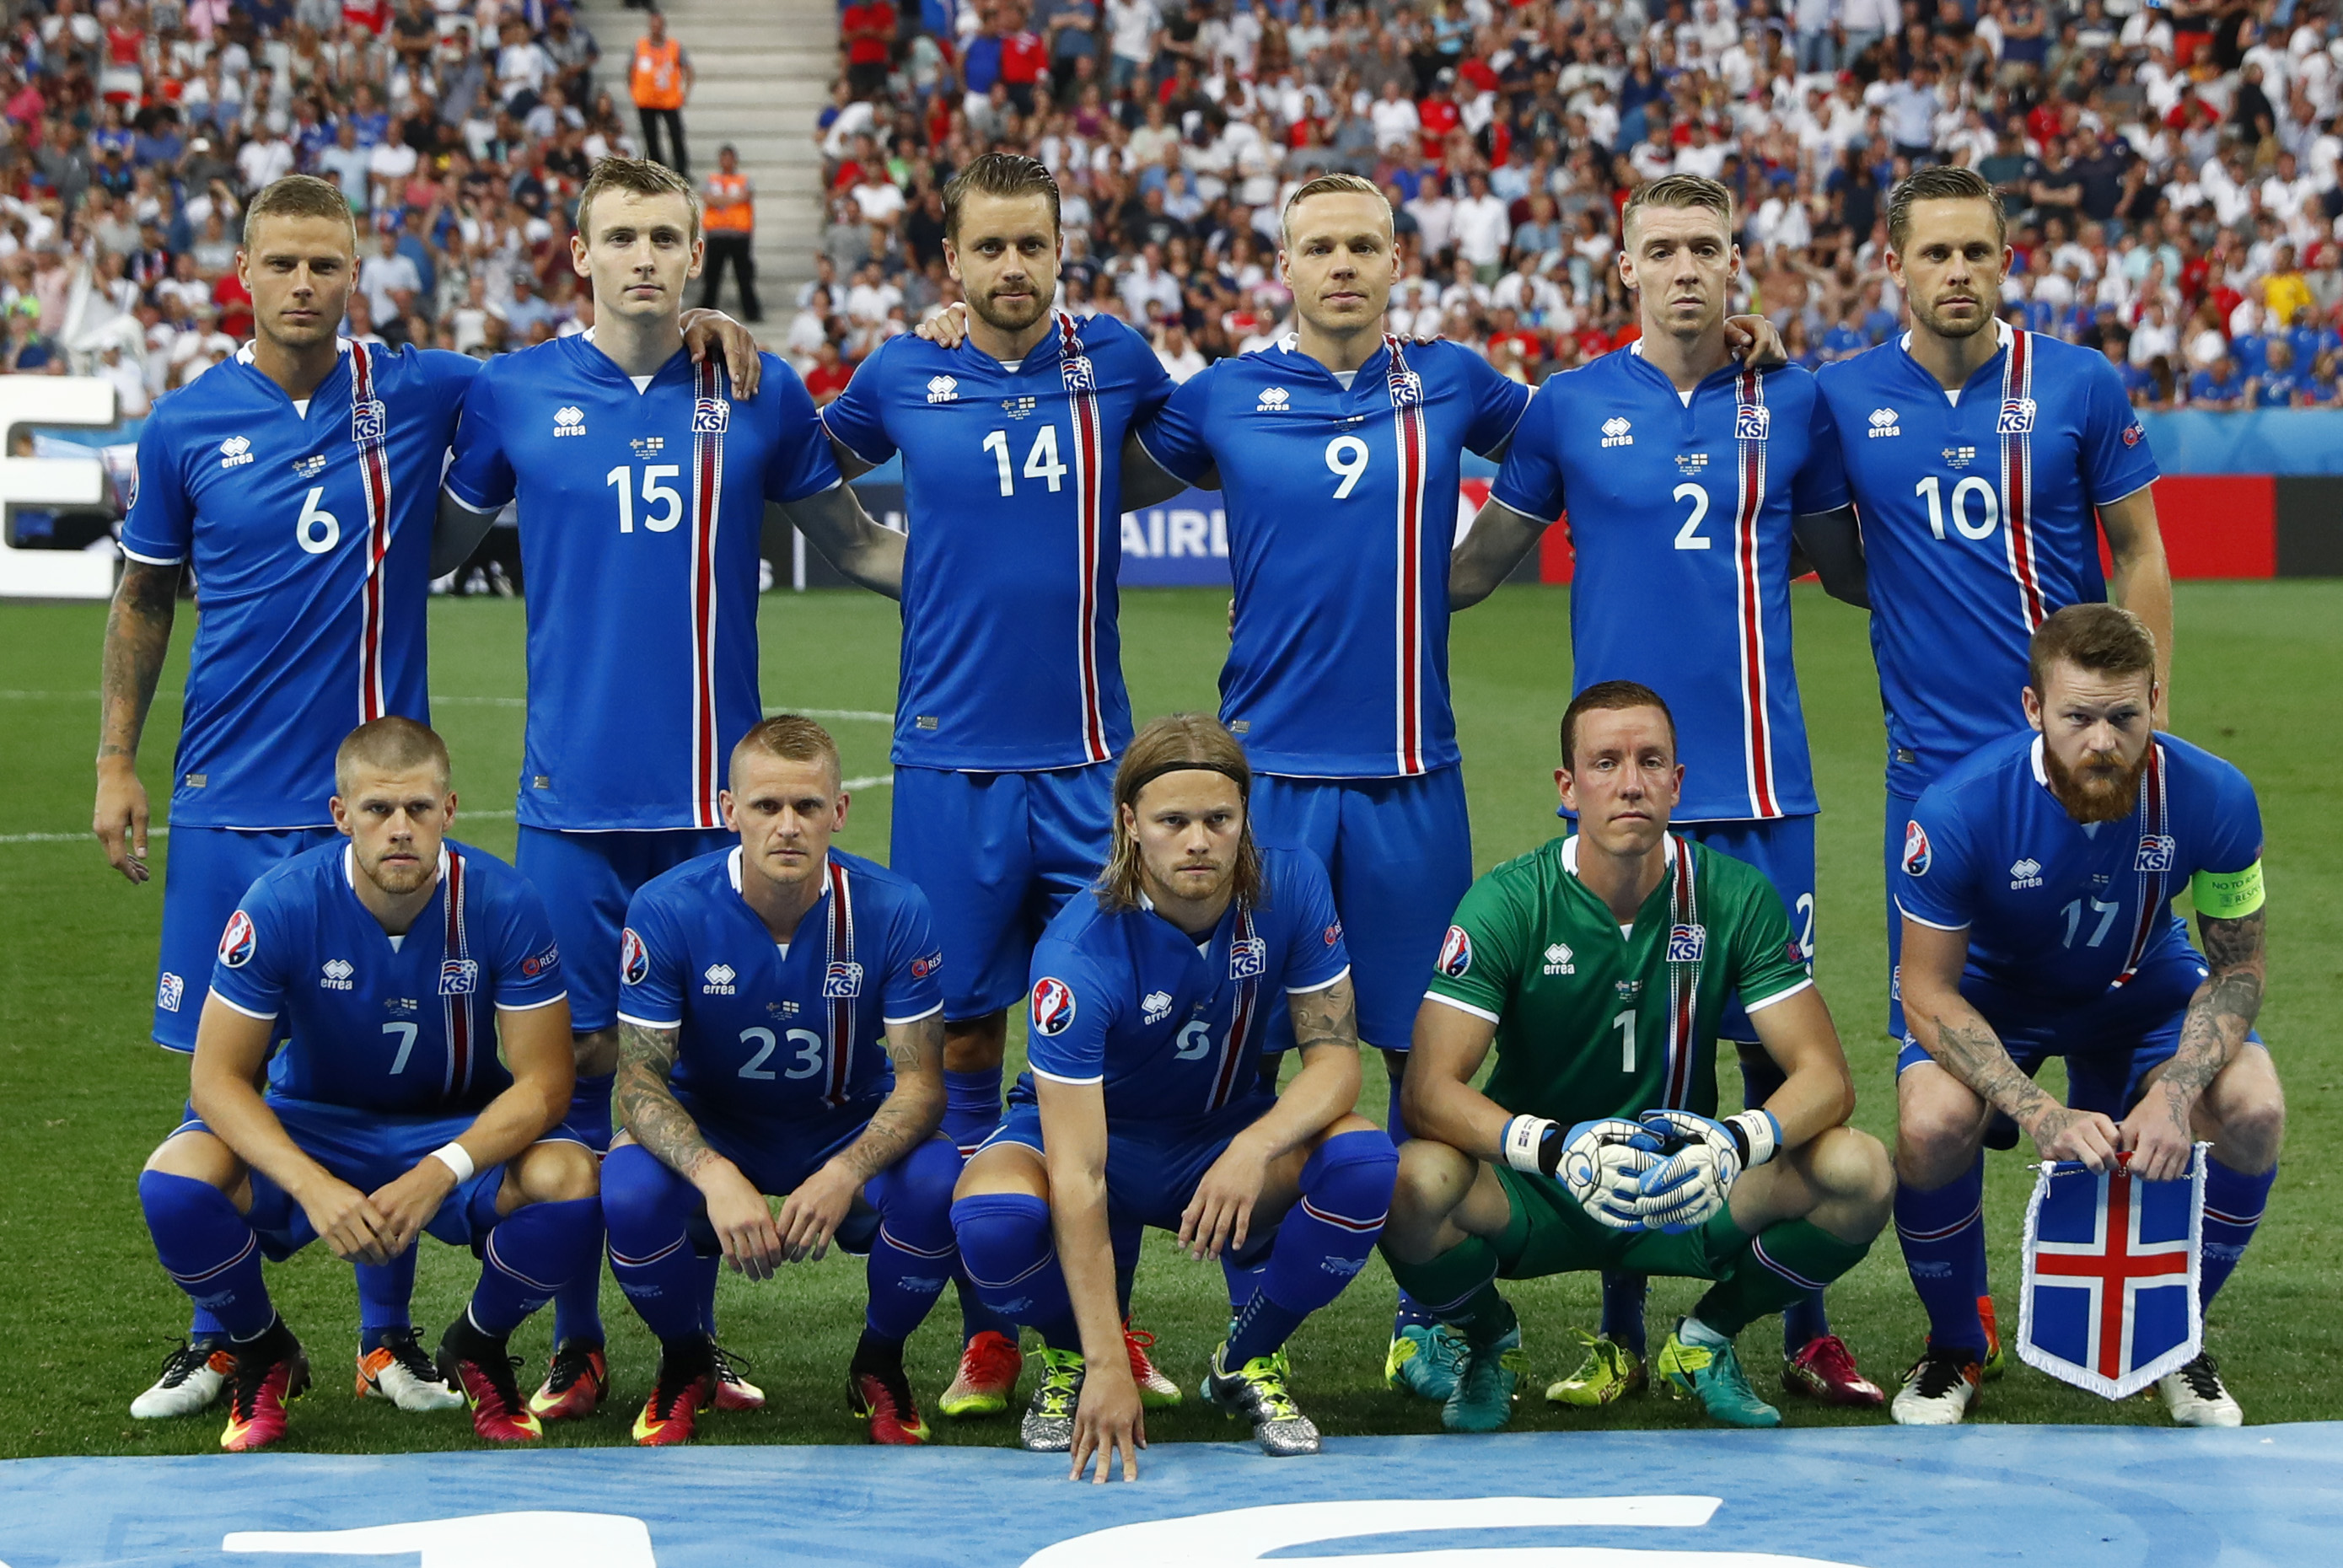 The Iceland soccer team poses before its match against England in the Euro 2016 tournament on June 27, 2016 at the Stade de Nice, in Nice, France